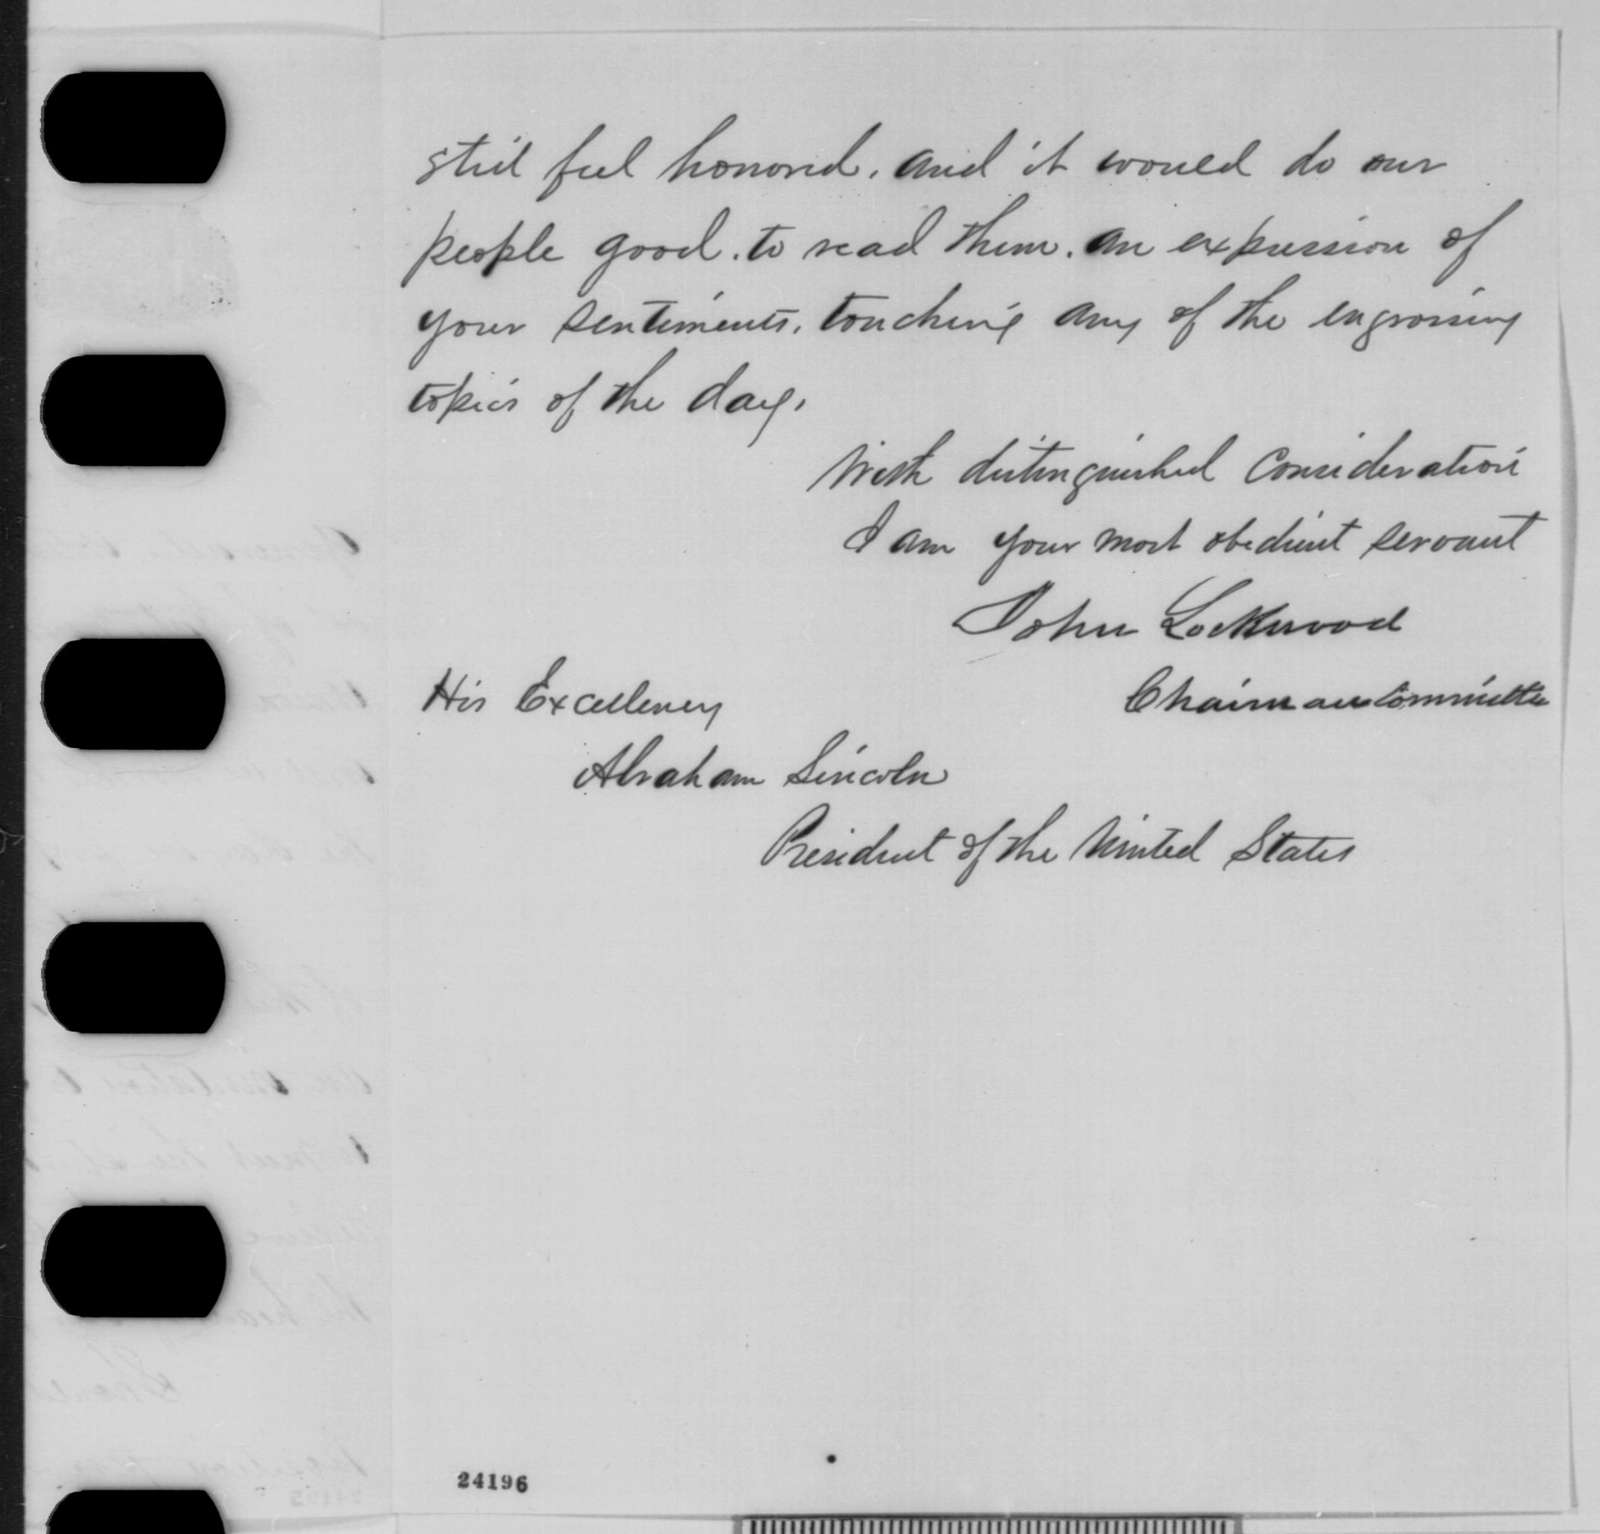 John Lockwood to Abraham Lincoln, Tuesday, June 16, 1863  (Invitation to attend meeting in Milwaukee)